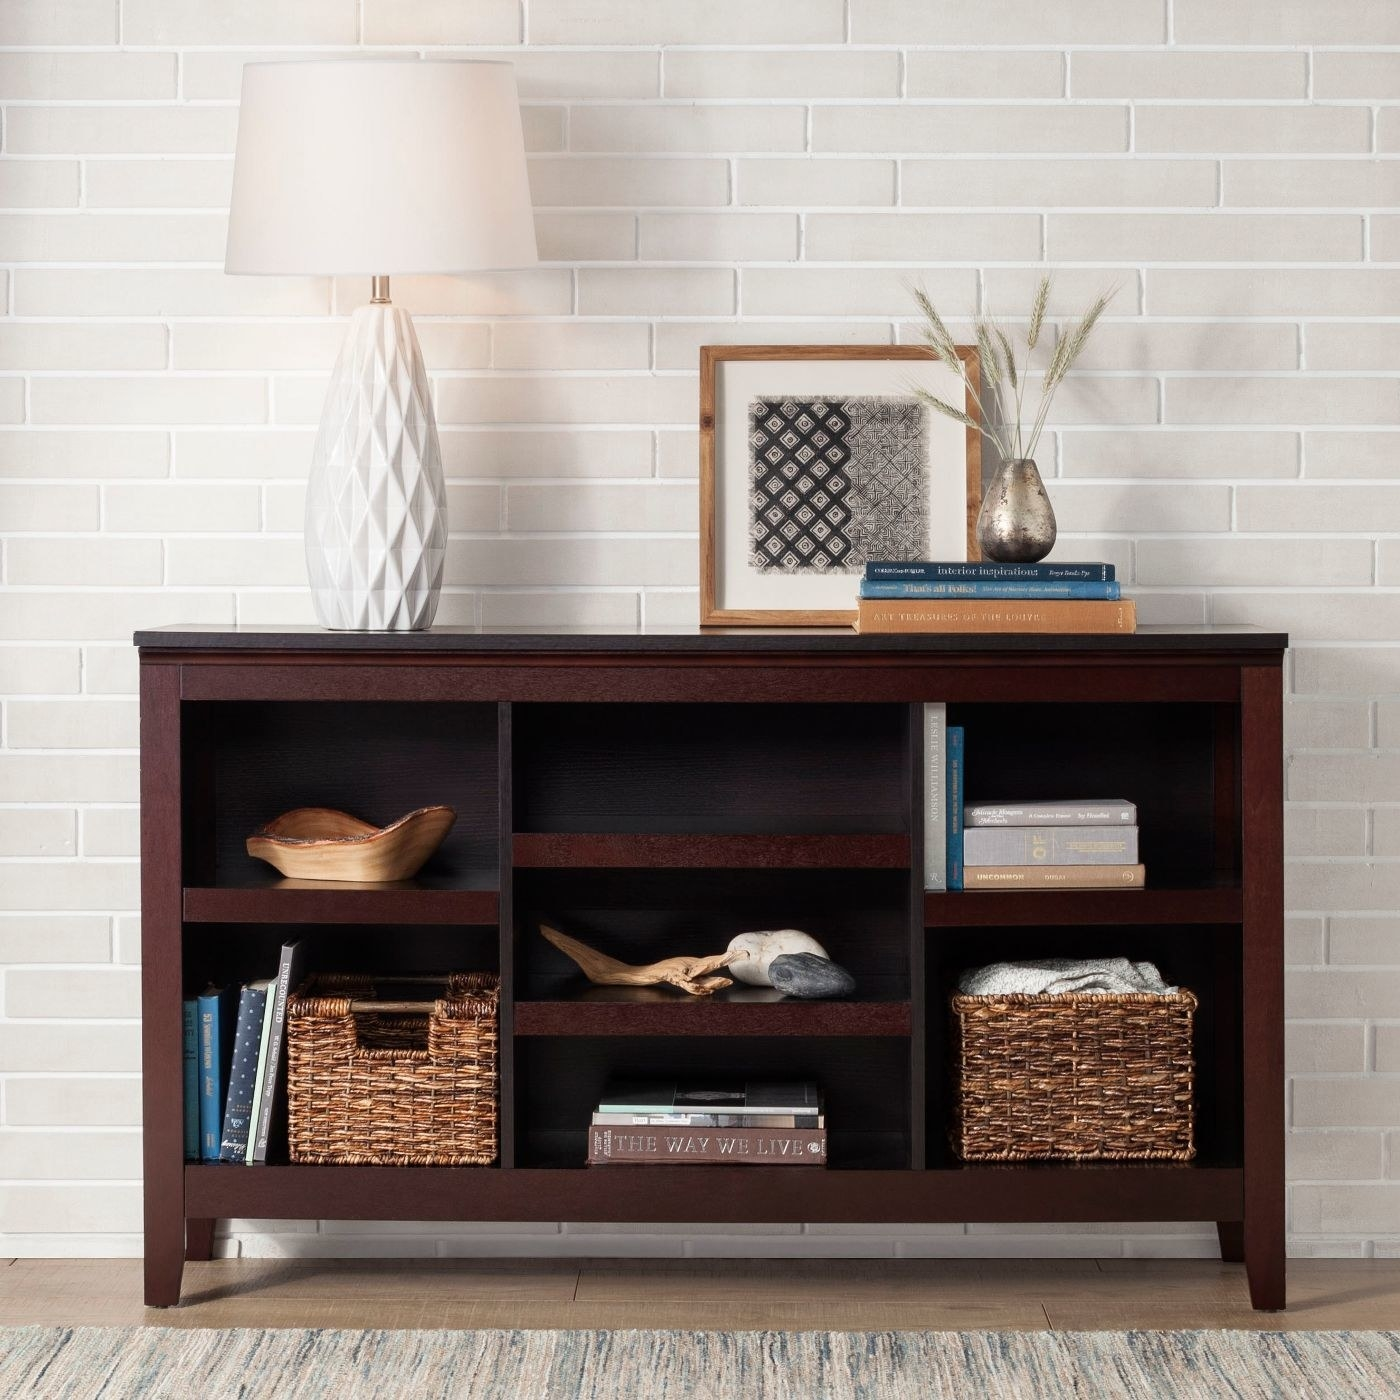 console table with two wicker milk crates on the shelves